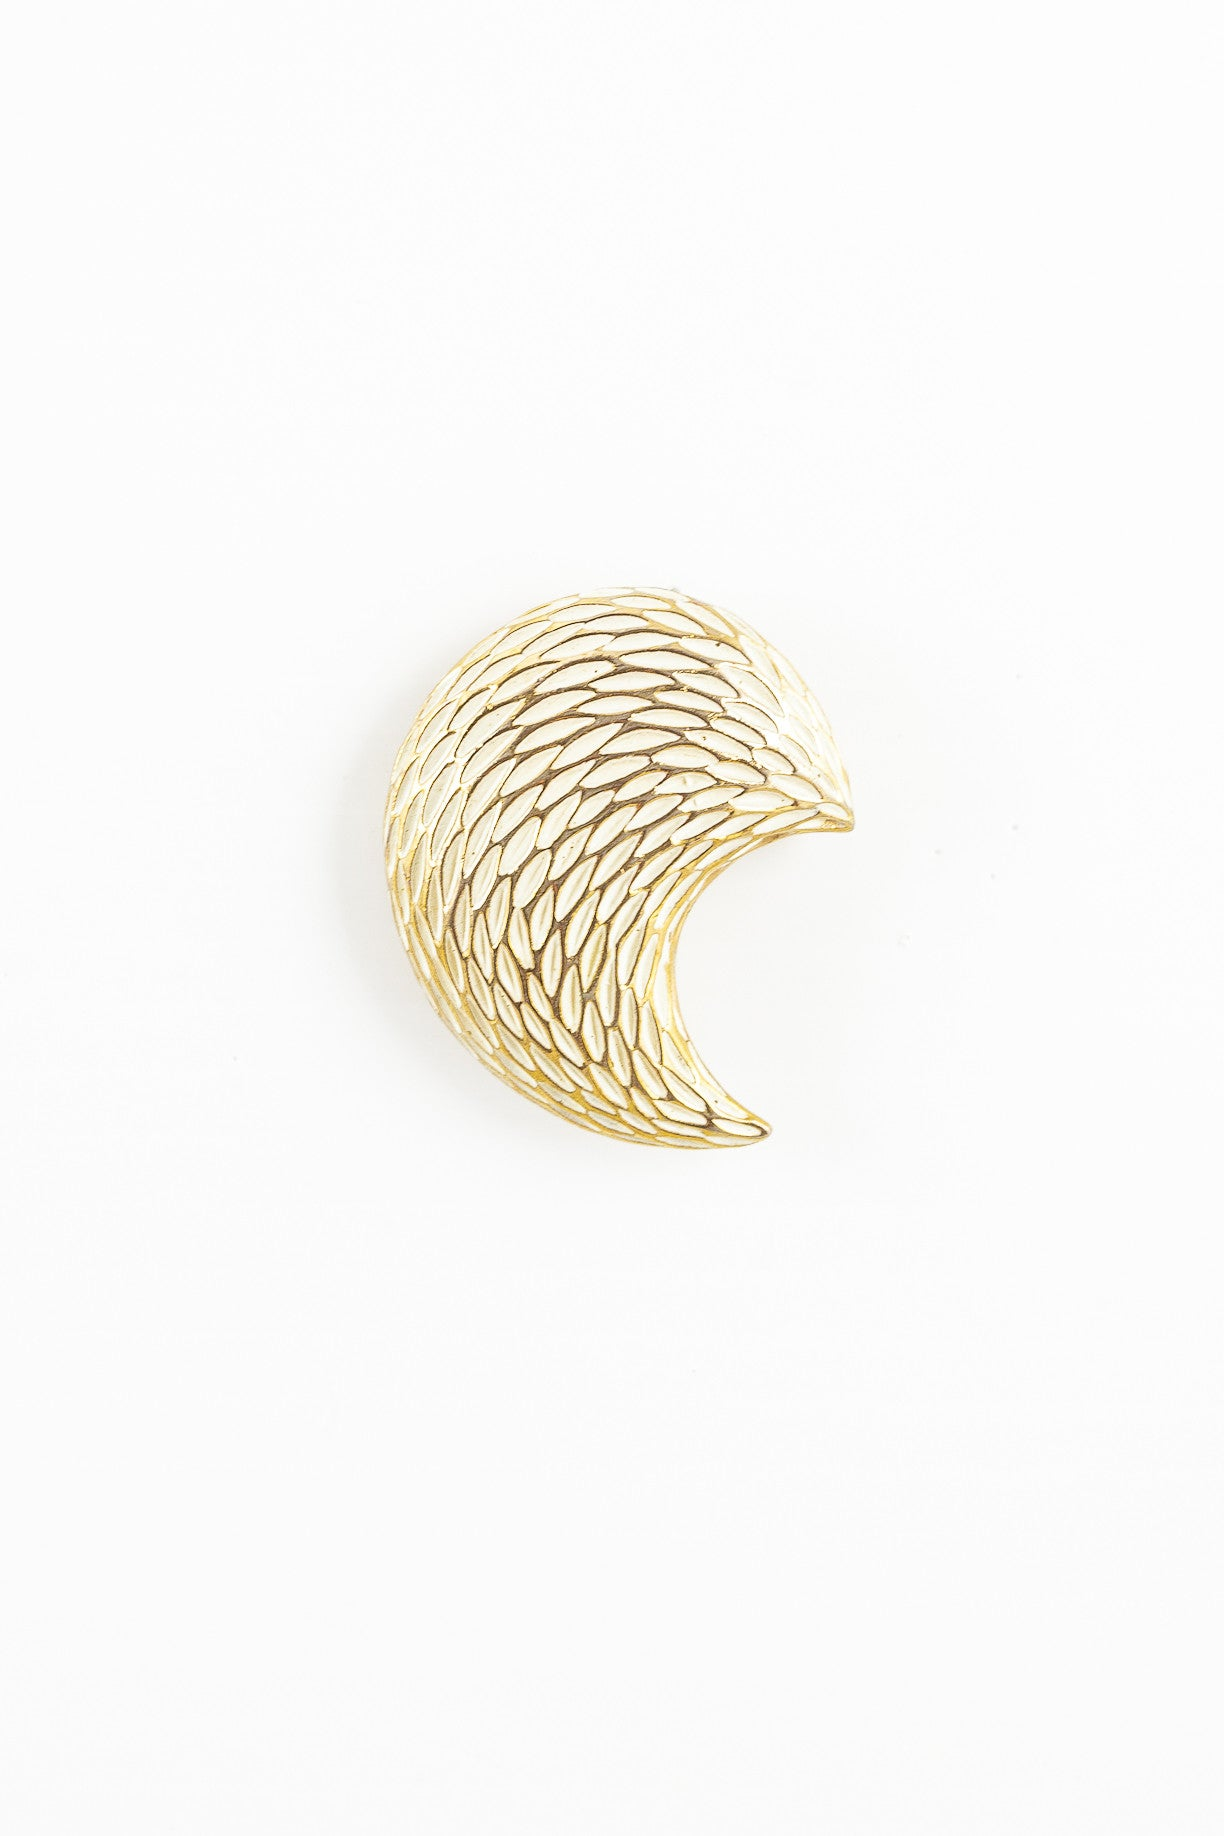 70's__BSK__Textured Half Moon Pin